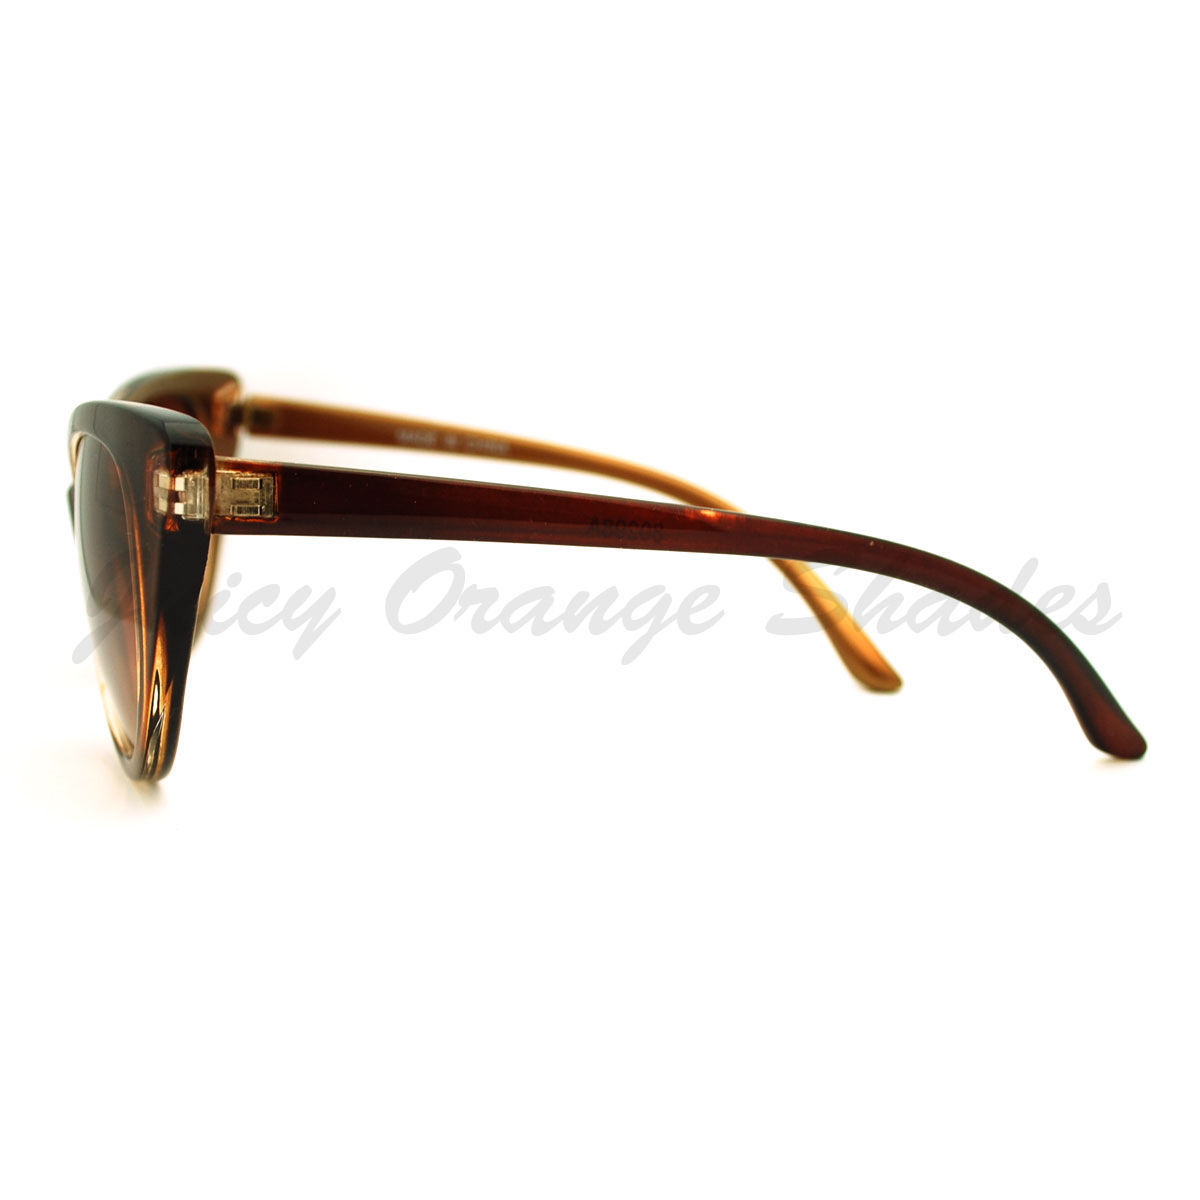 Womens Cateye Sunglasses High Fashion Popular Retro Look